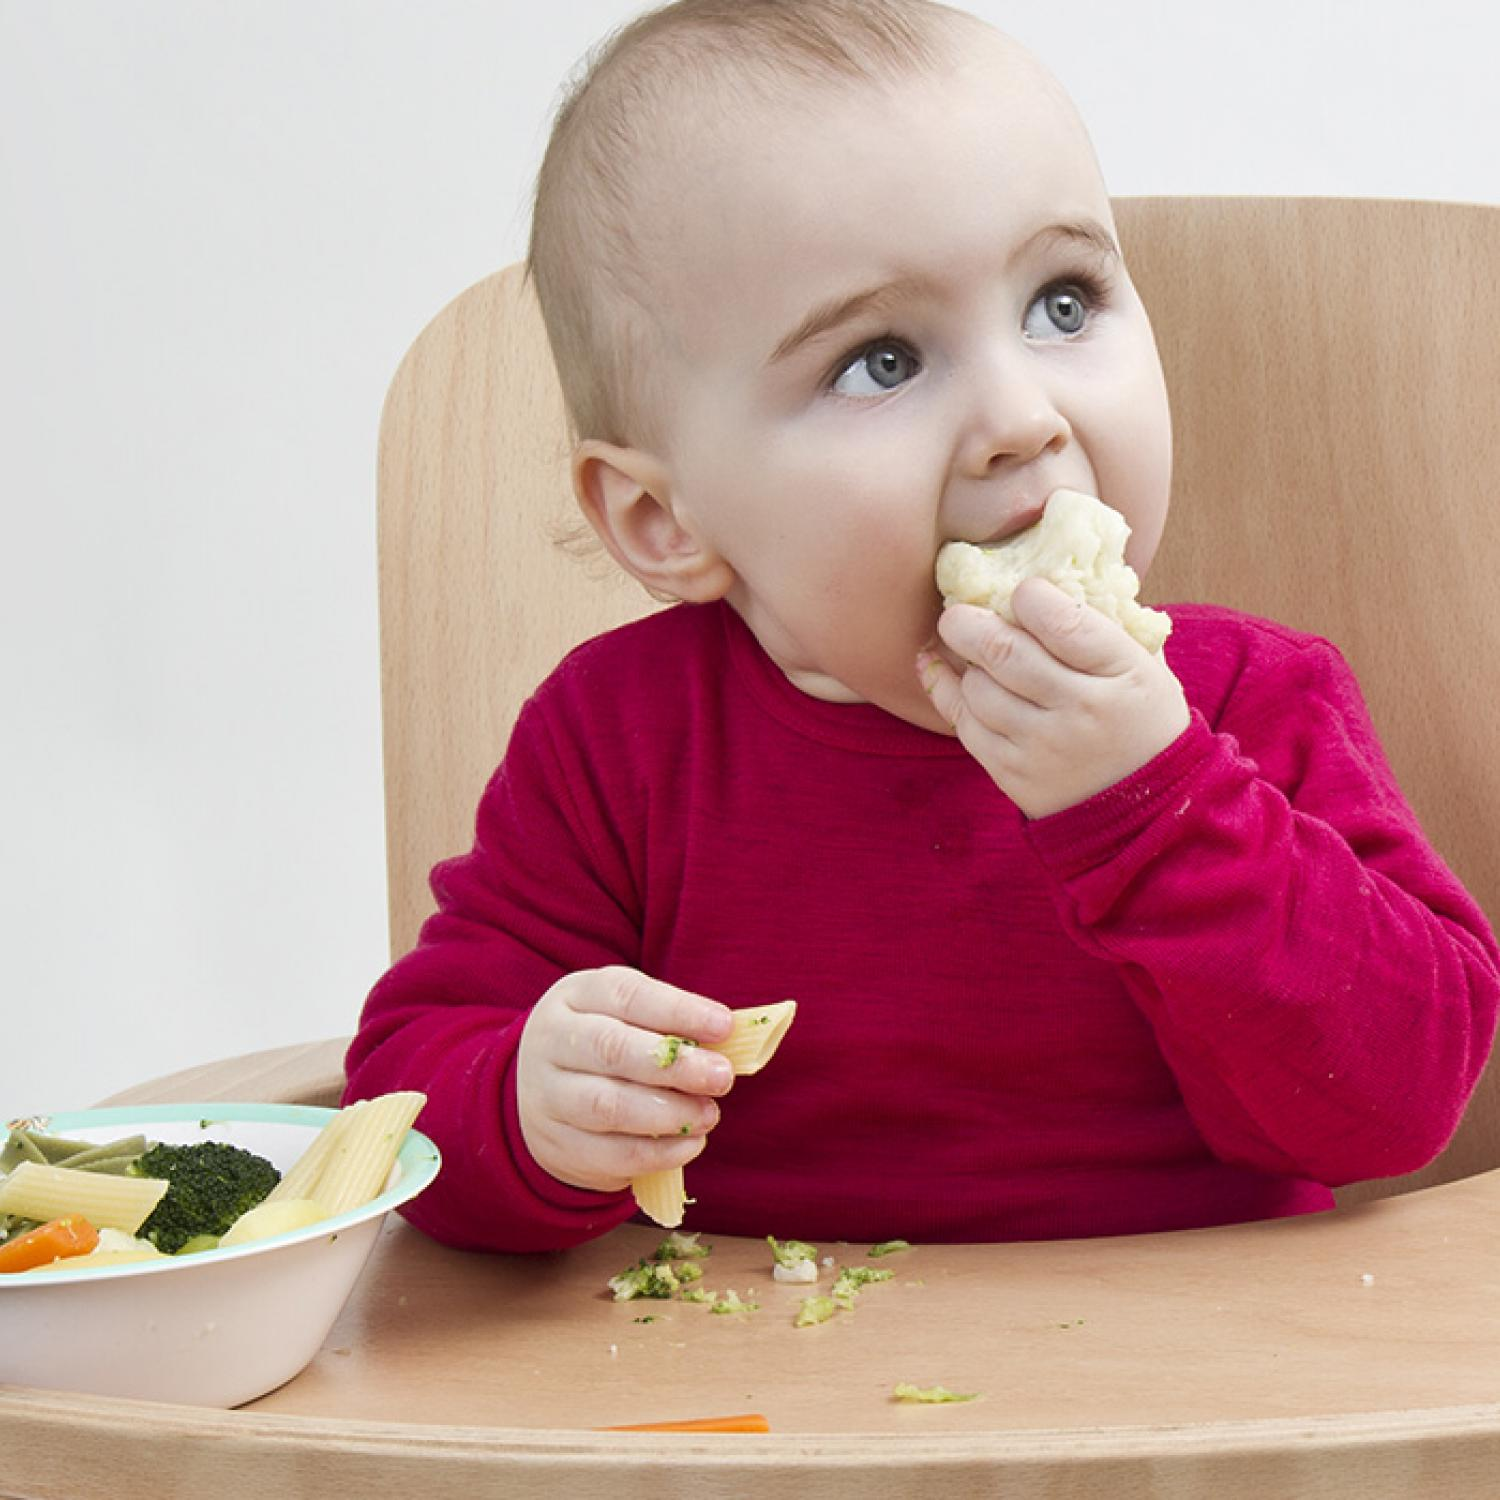 Babyled Weaning  Parenting. Universal Business Listings Dennis Buys Cars. To Kill A Mockingbird Closing Argument. Church Audio Video Systems Get Business Leads. Inca Art And Architecture Gw Human Resources. Options Calculator Profit Internet In Detroit. Intuit Online Backup Service. How To Become And Accountant Crm Stand For. Best Internet Monitoring Software